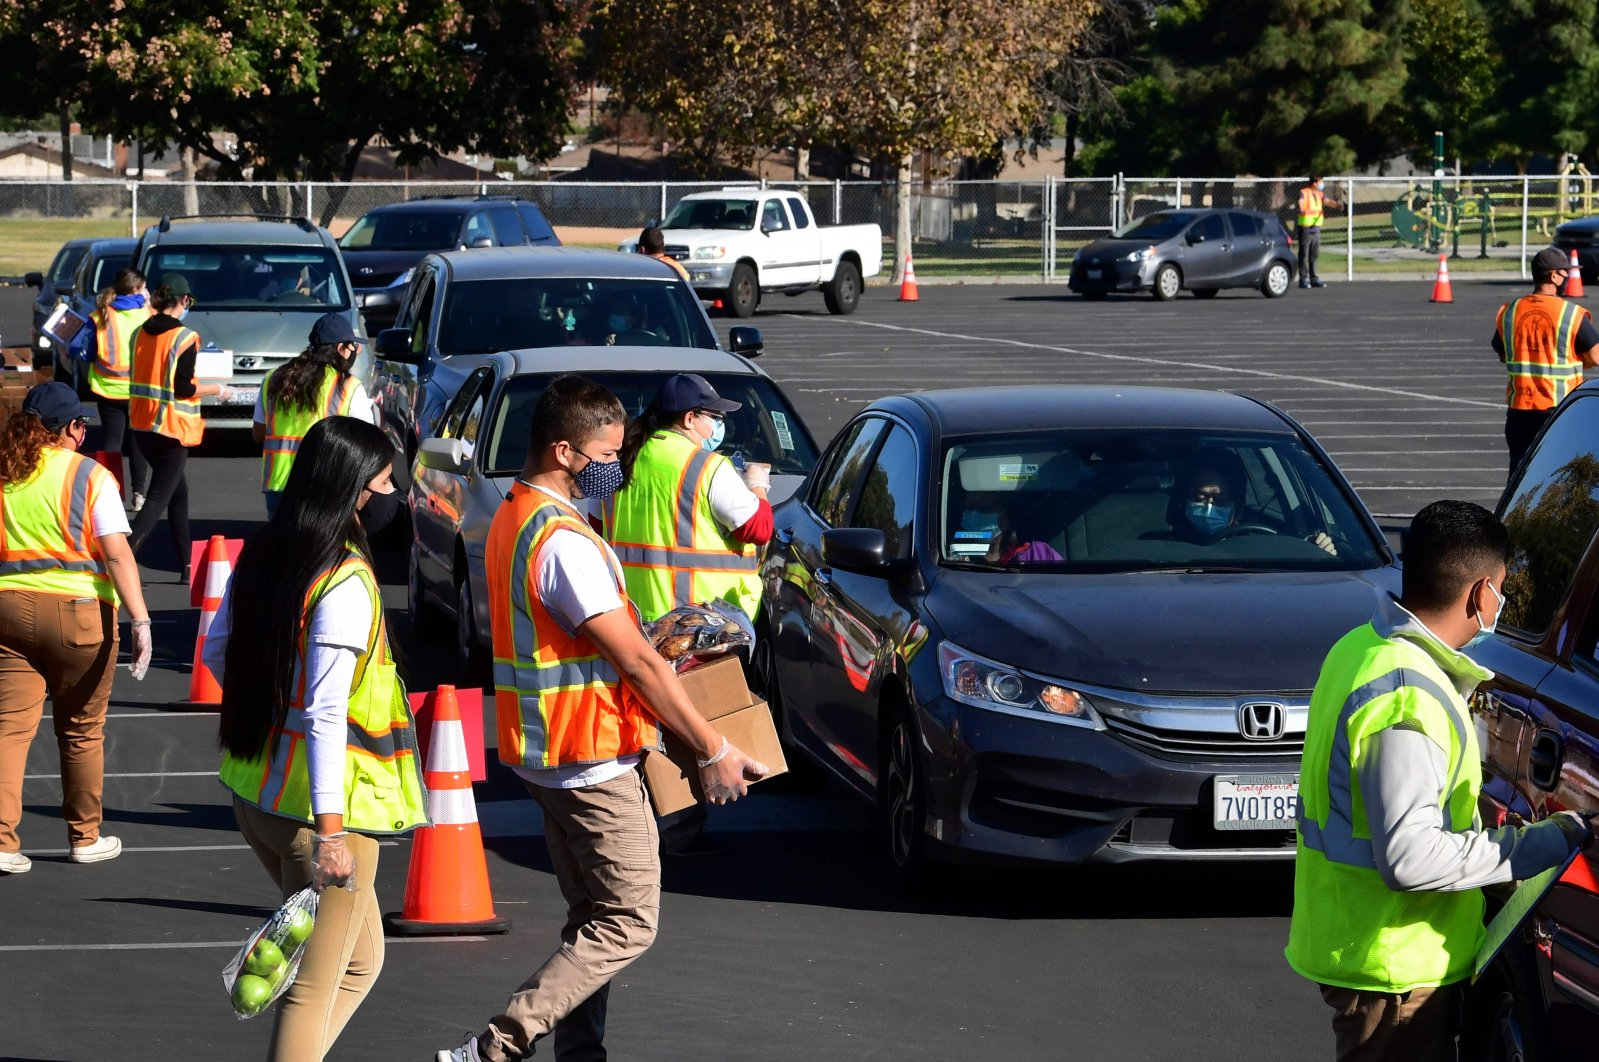 """Food is loaded as drivers in their vehicles wait in line on arrival at a """"Let's Feed LA County"""" food distribution hosted by the Los Angeles Food Bank in Hacienda Heights, California, on Dec. 4, 2020. (Photo by Frederic J. BROWN / AFP)"""